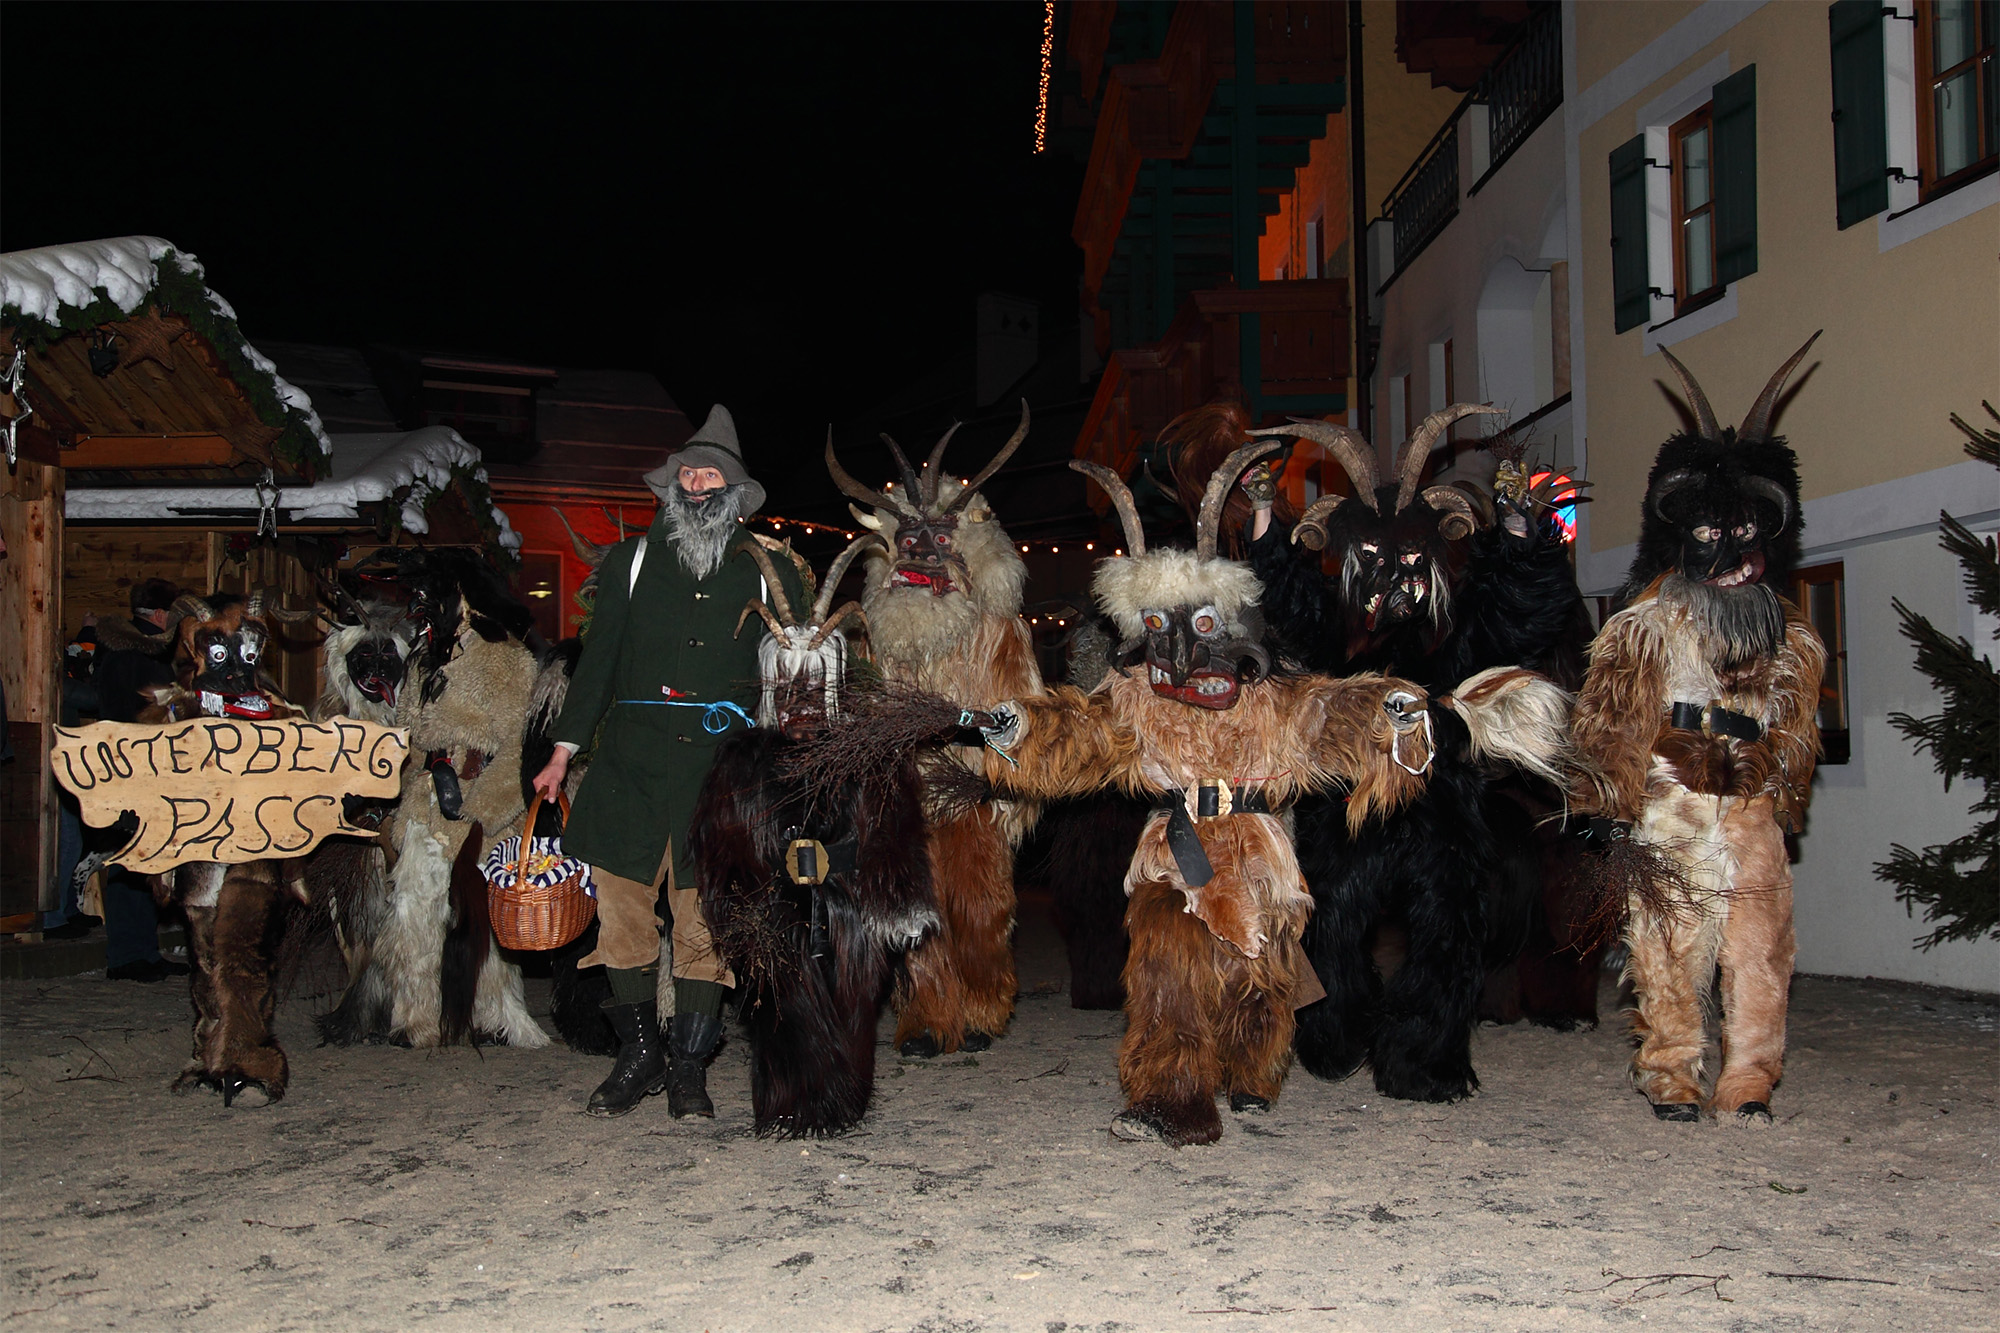 Krampusse am Adventmarkt in Großarl